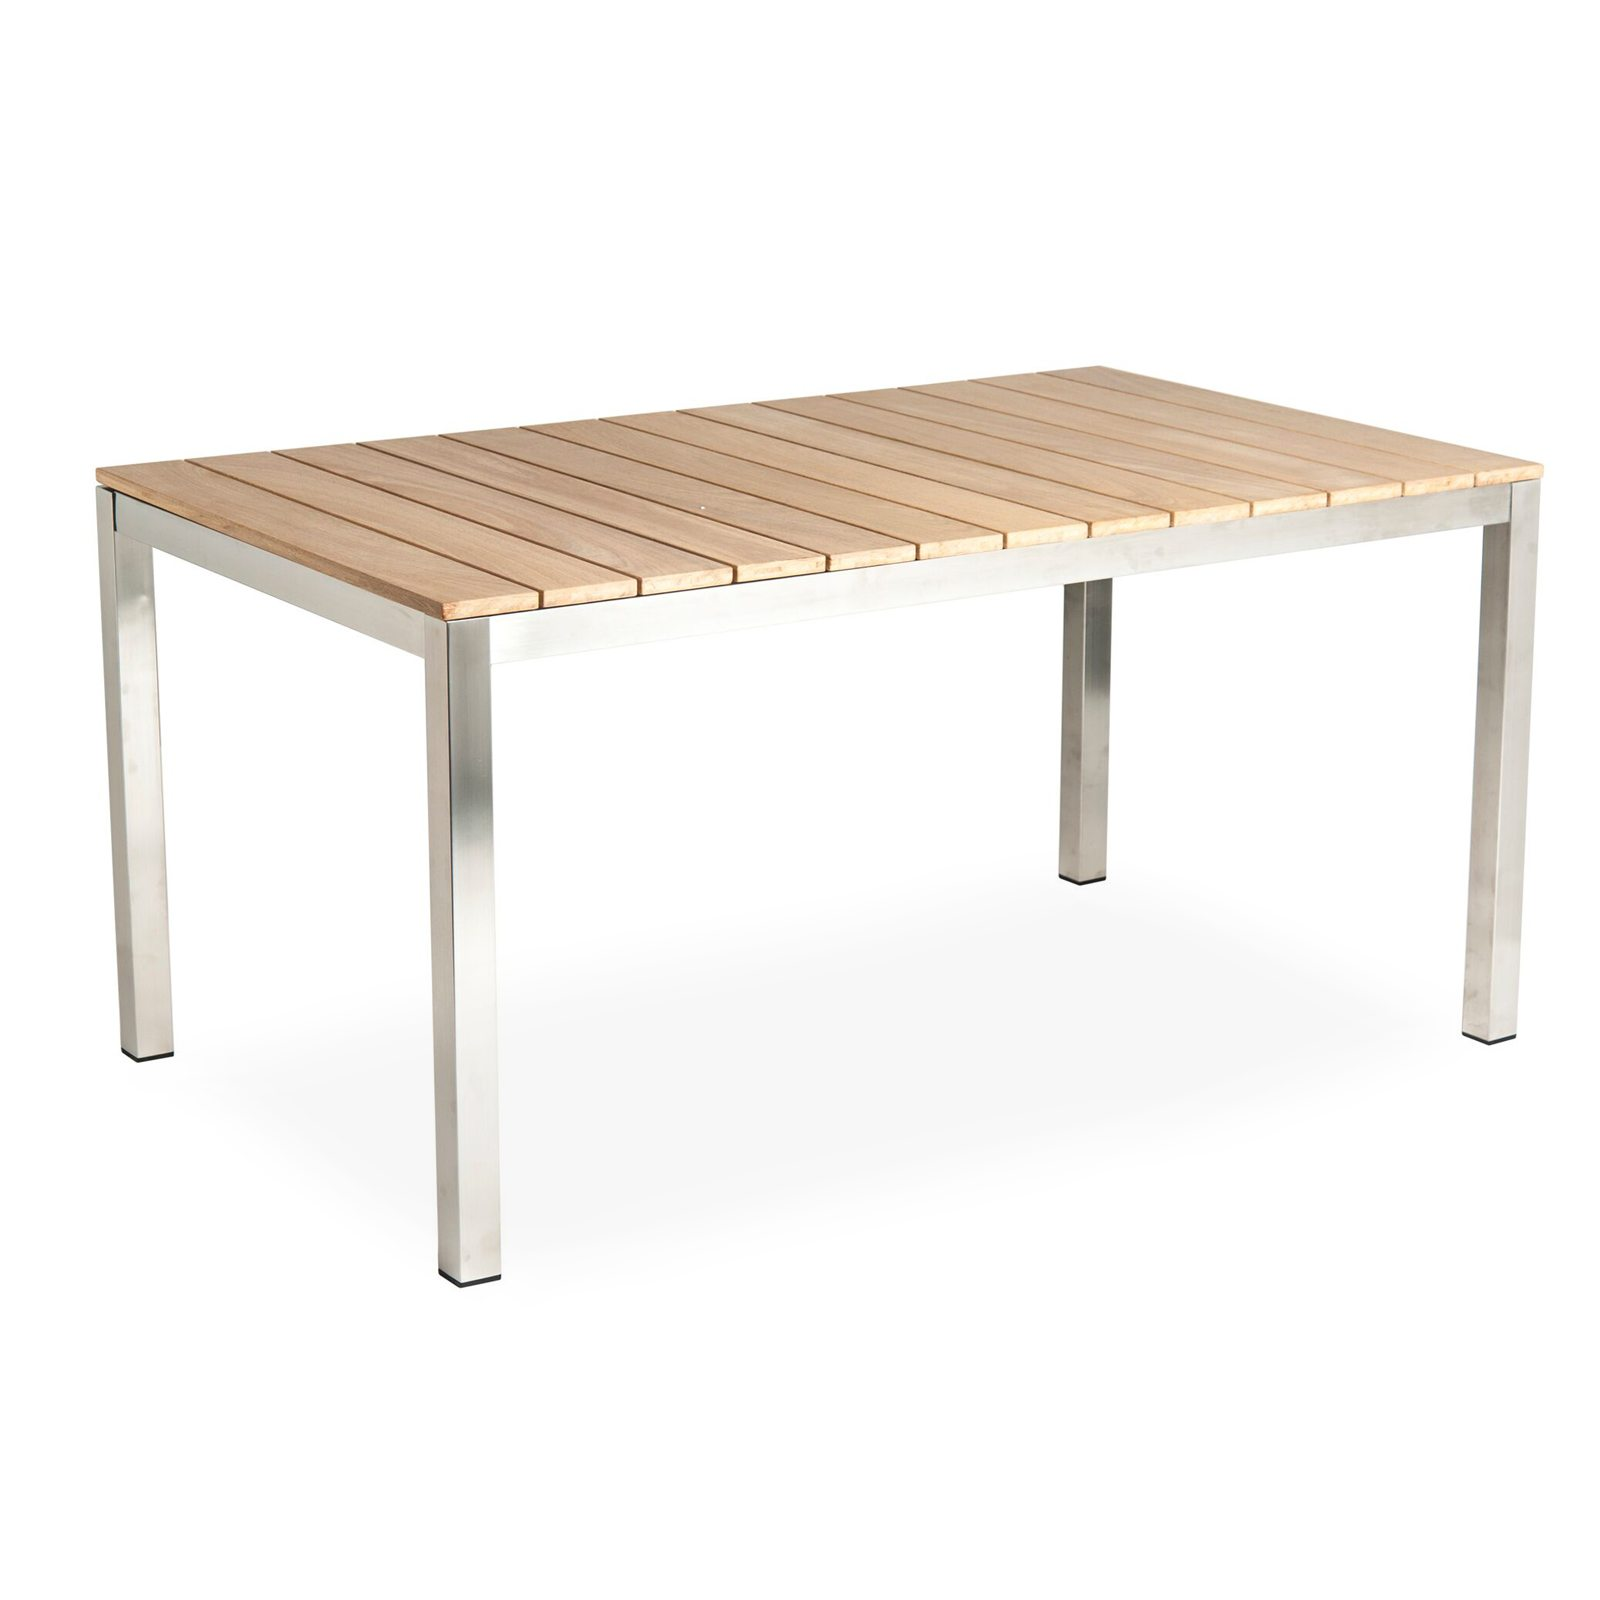 Amalfi Outdoor Dining Table by Bonham & Bonham